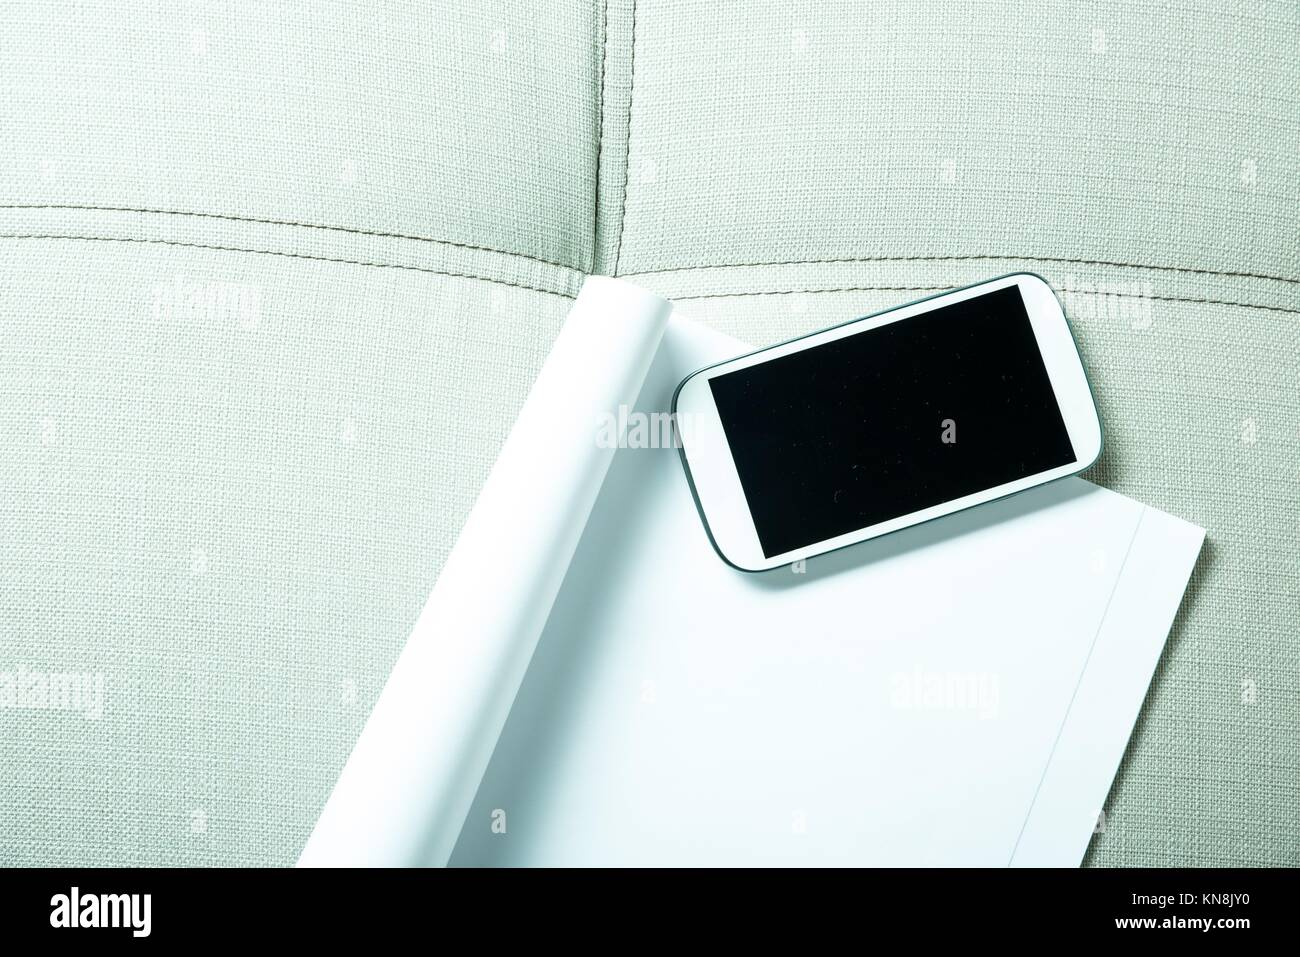 A smartphone and a exercise book lying on a sofa.. - Stock Image